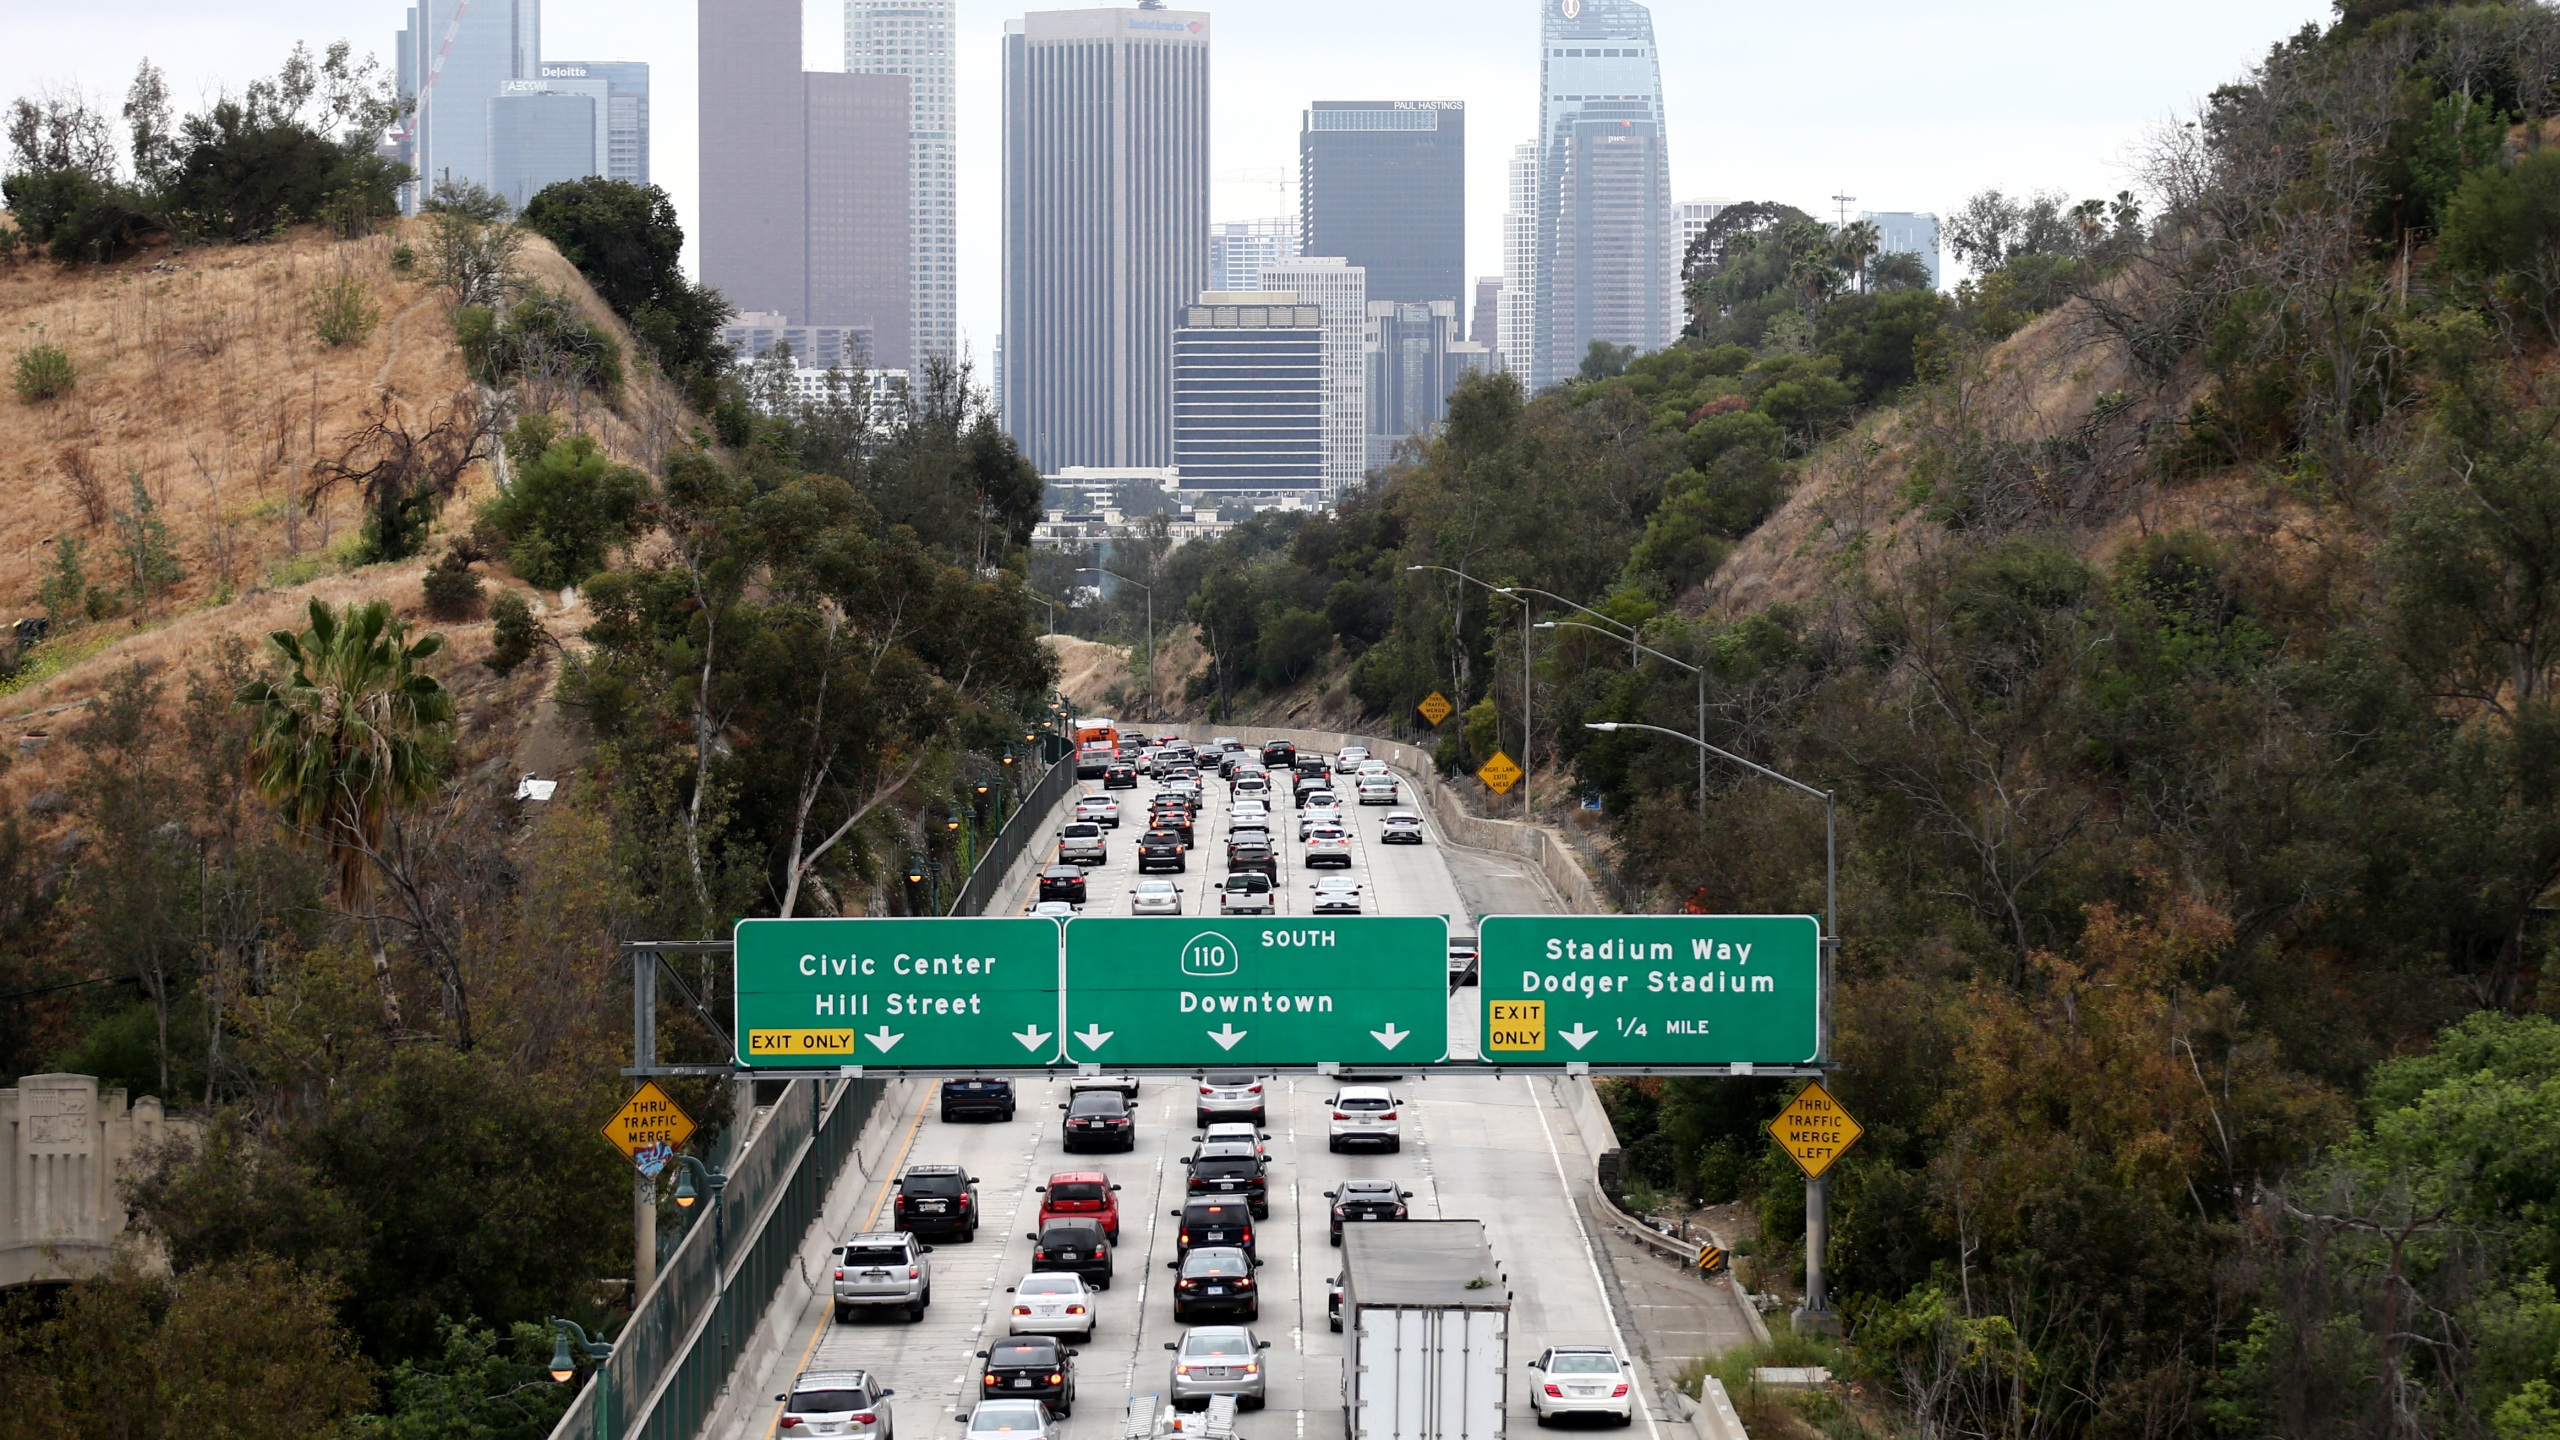 Cars make their way toward downtown L.A. on the 110 freeway during the morning commute on April 22, 2021 in Los Angeles, California. (Mario Tama/Getty Images)